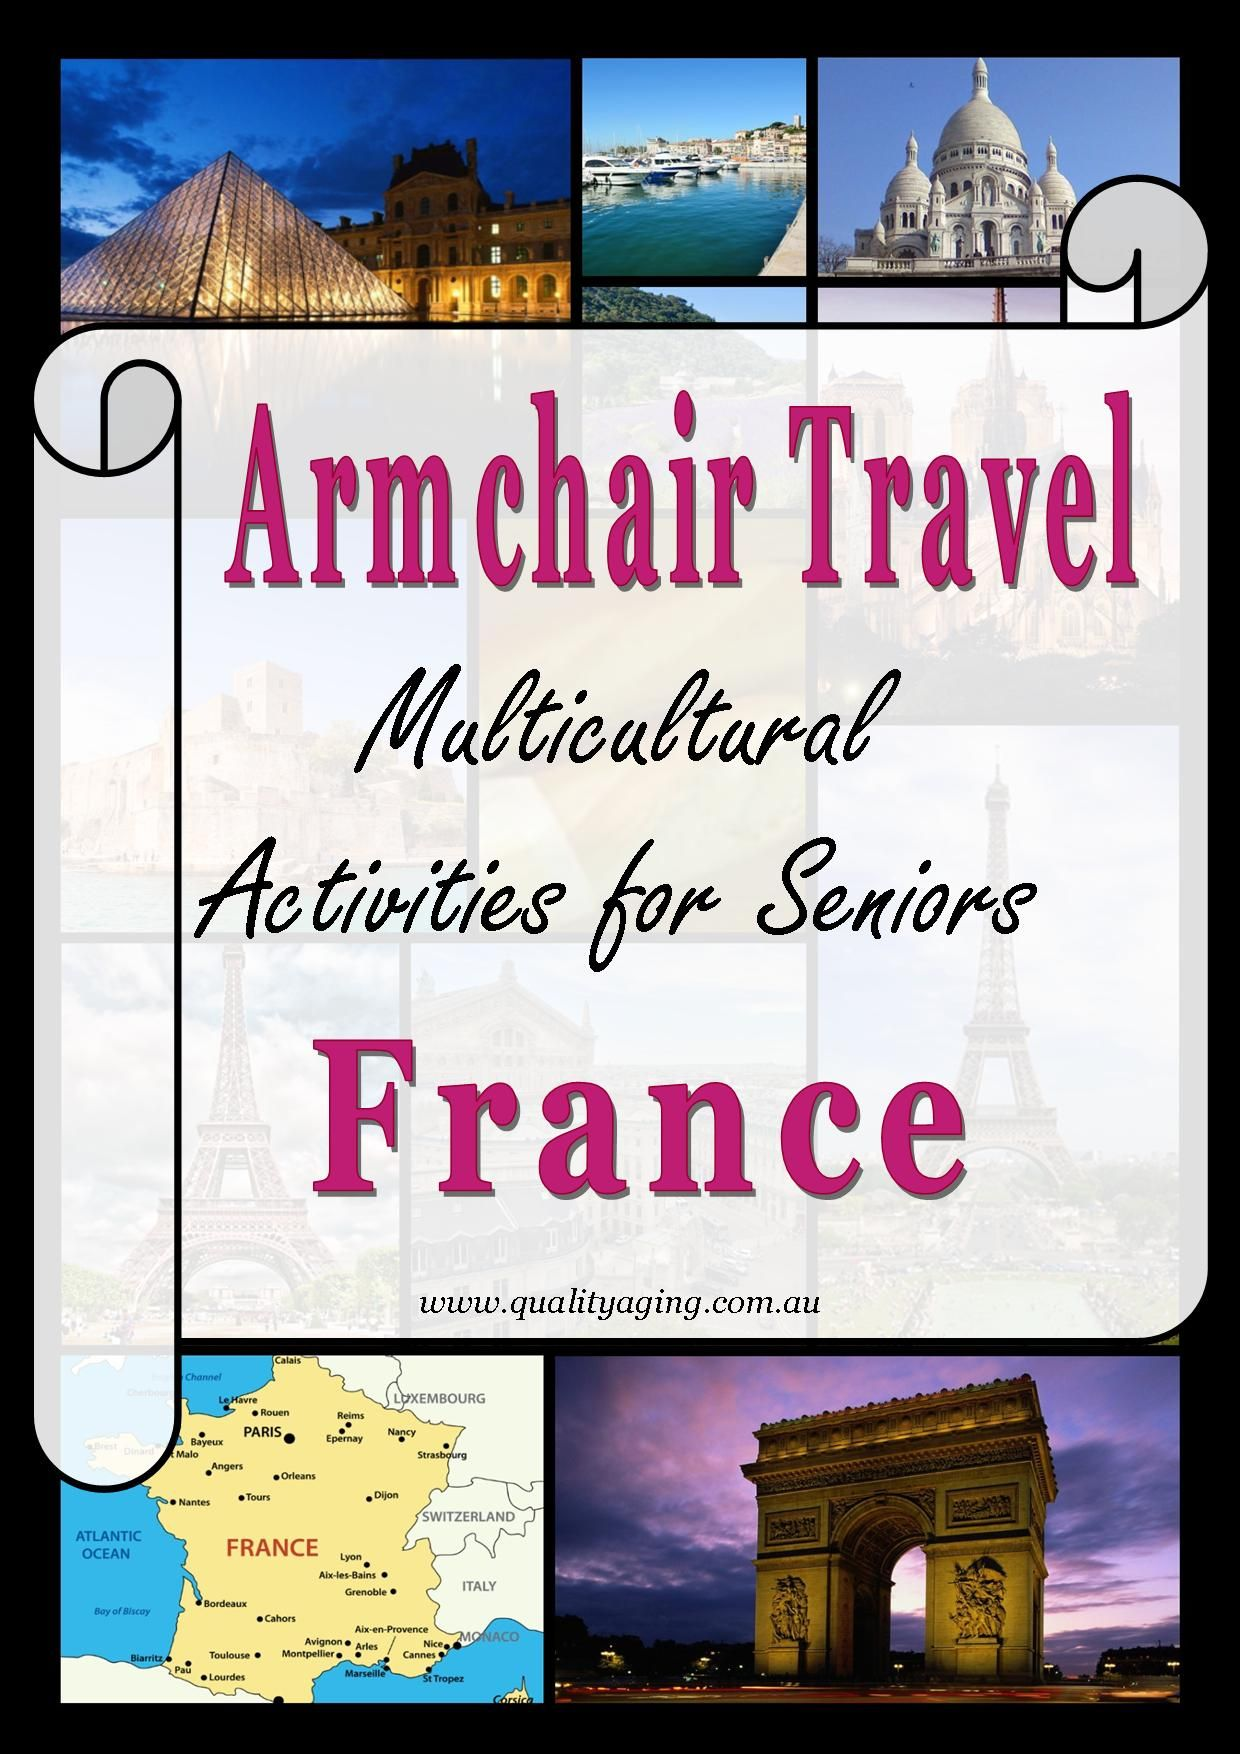 Armchair Travel - France | France travel, France map ...